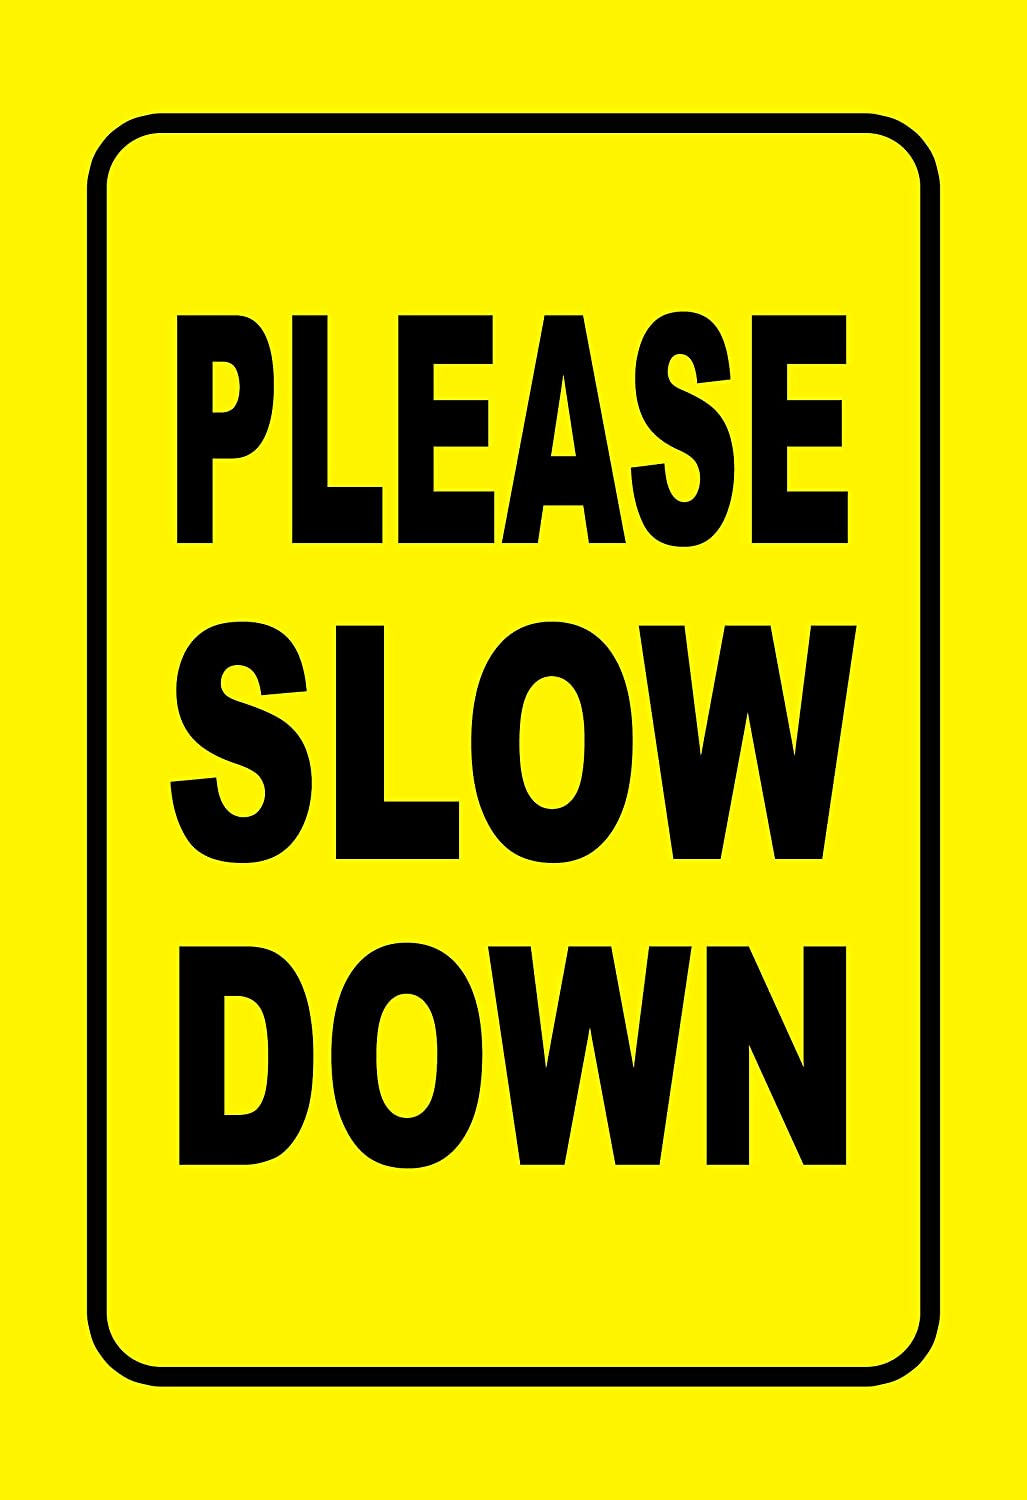 Double Sided Please Slow Down Sign Reflective Aluminum Metal Sign with Stakes,